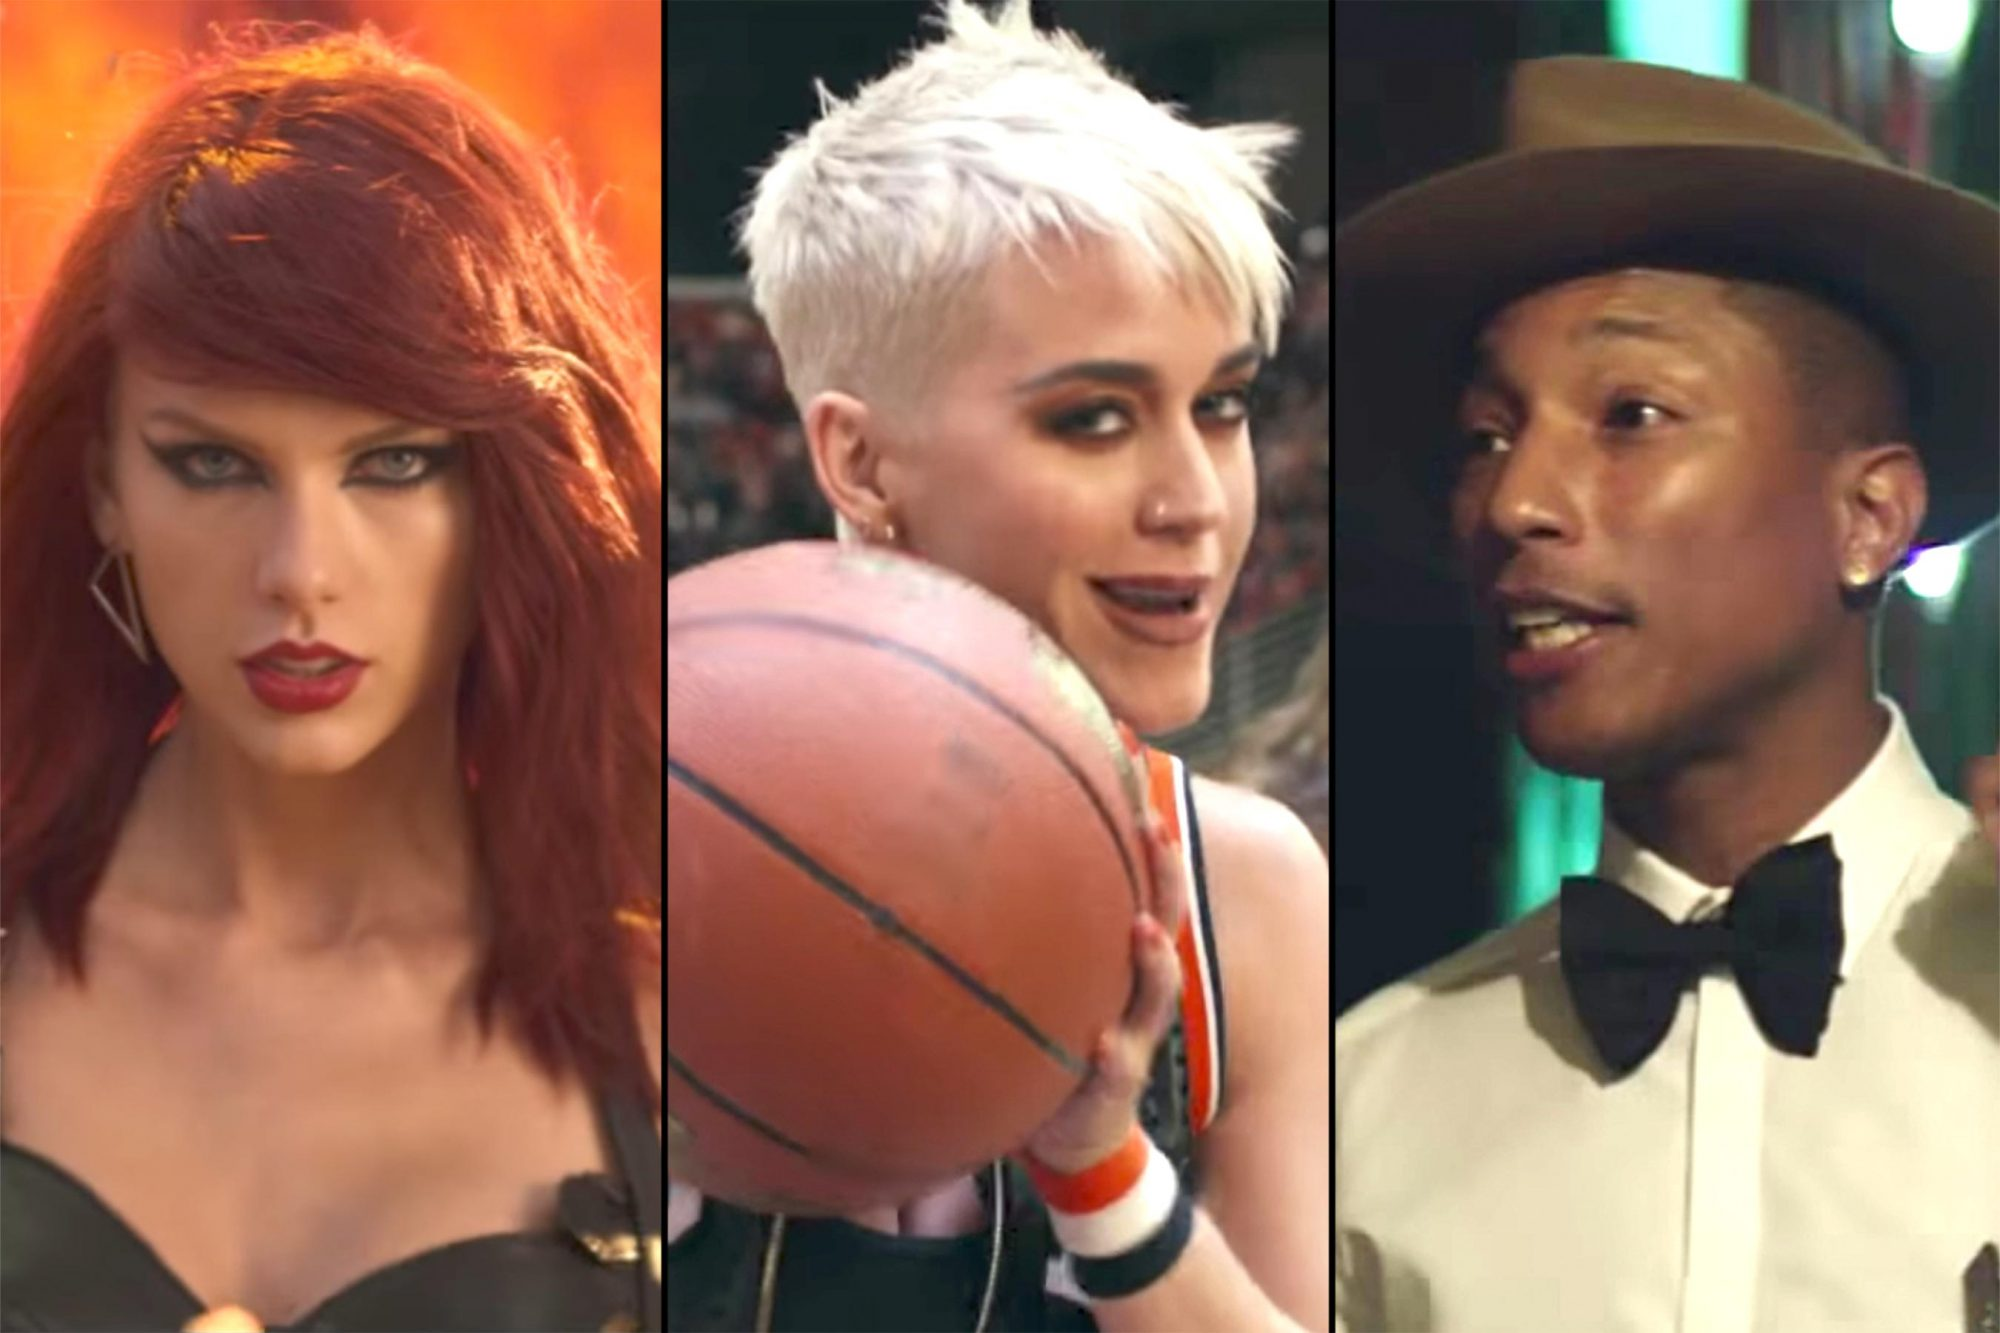 Katy-Perry-Taylor-Swift-Pharrell